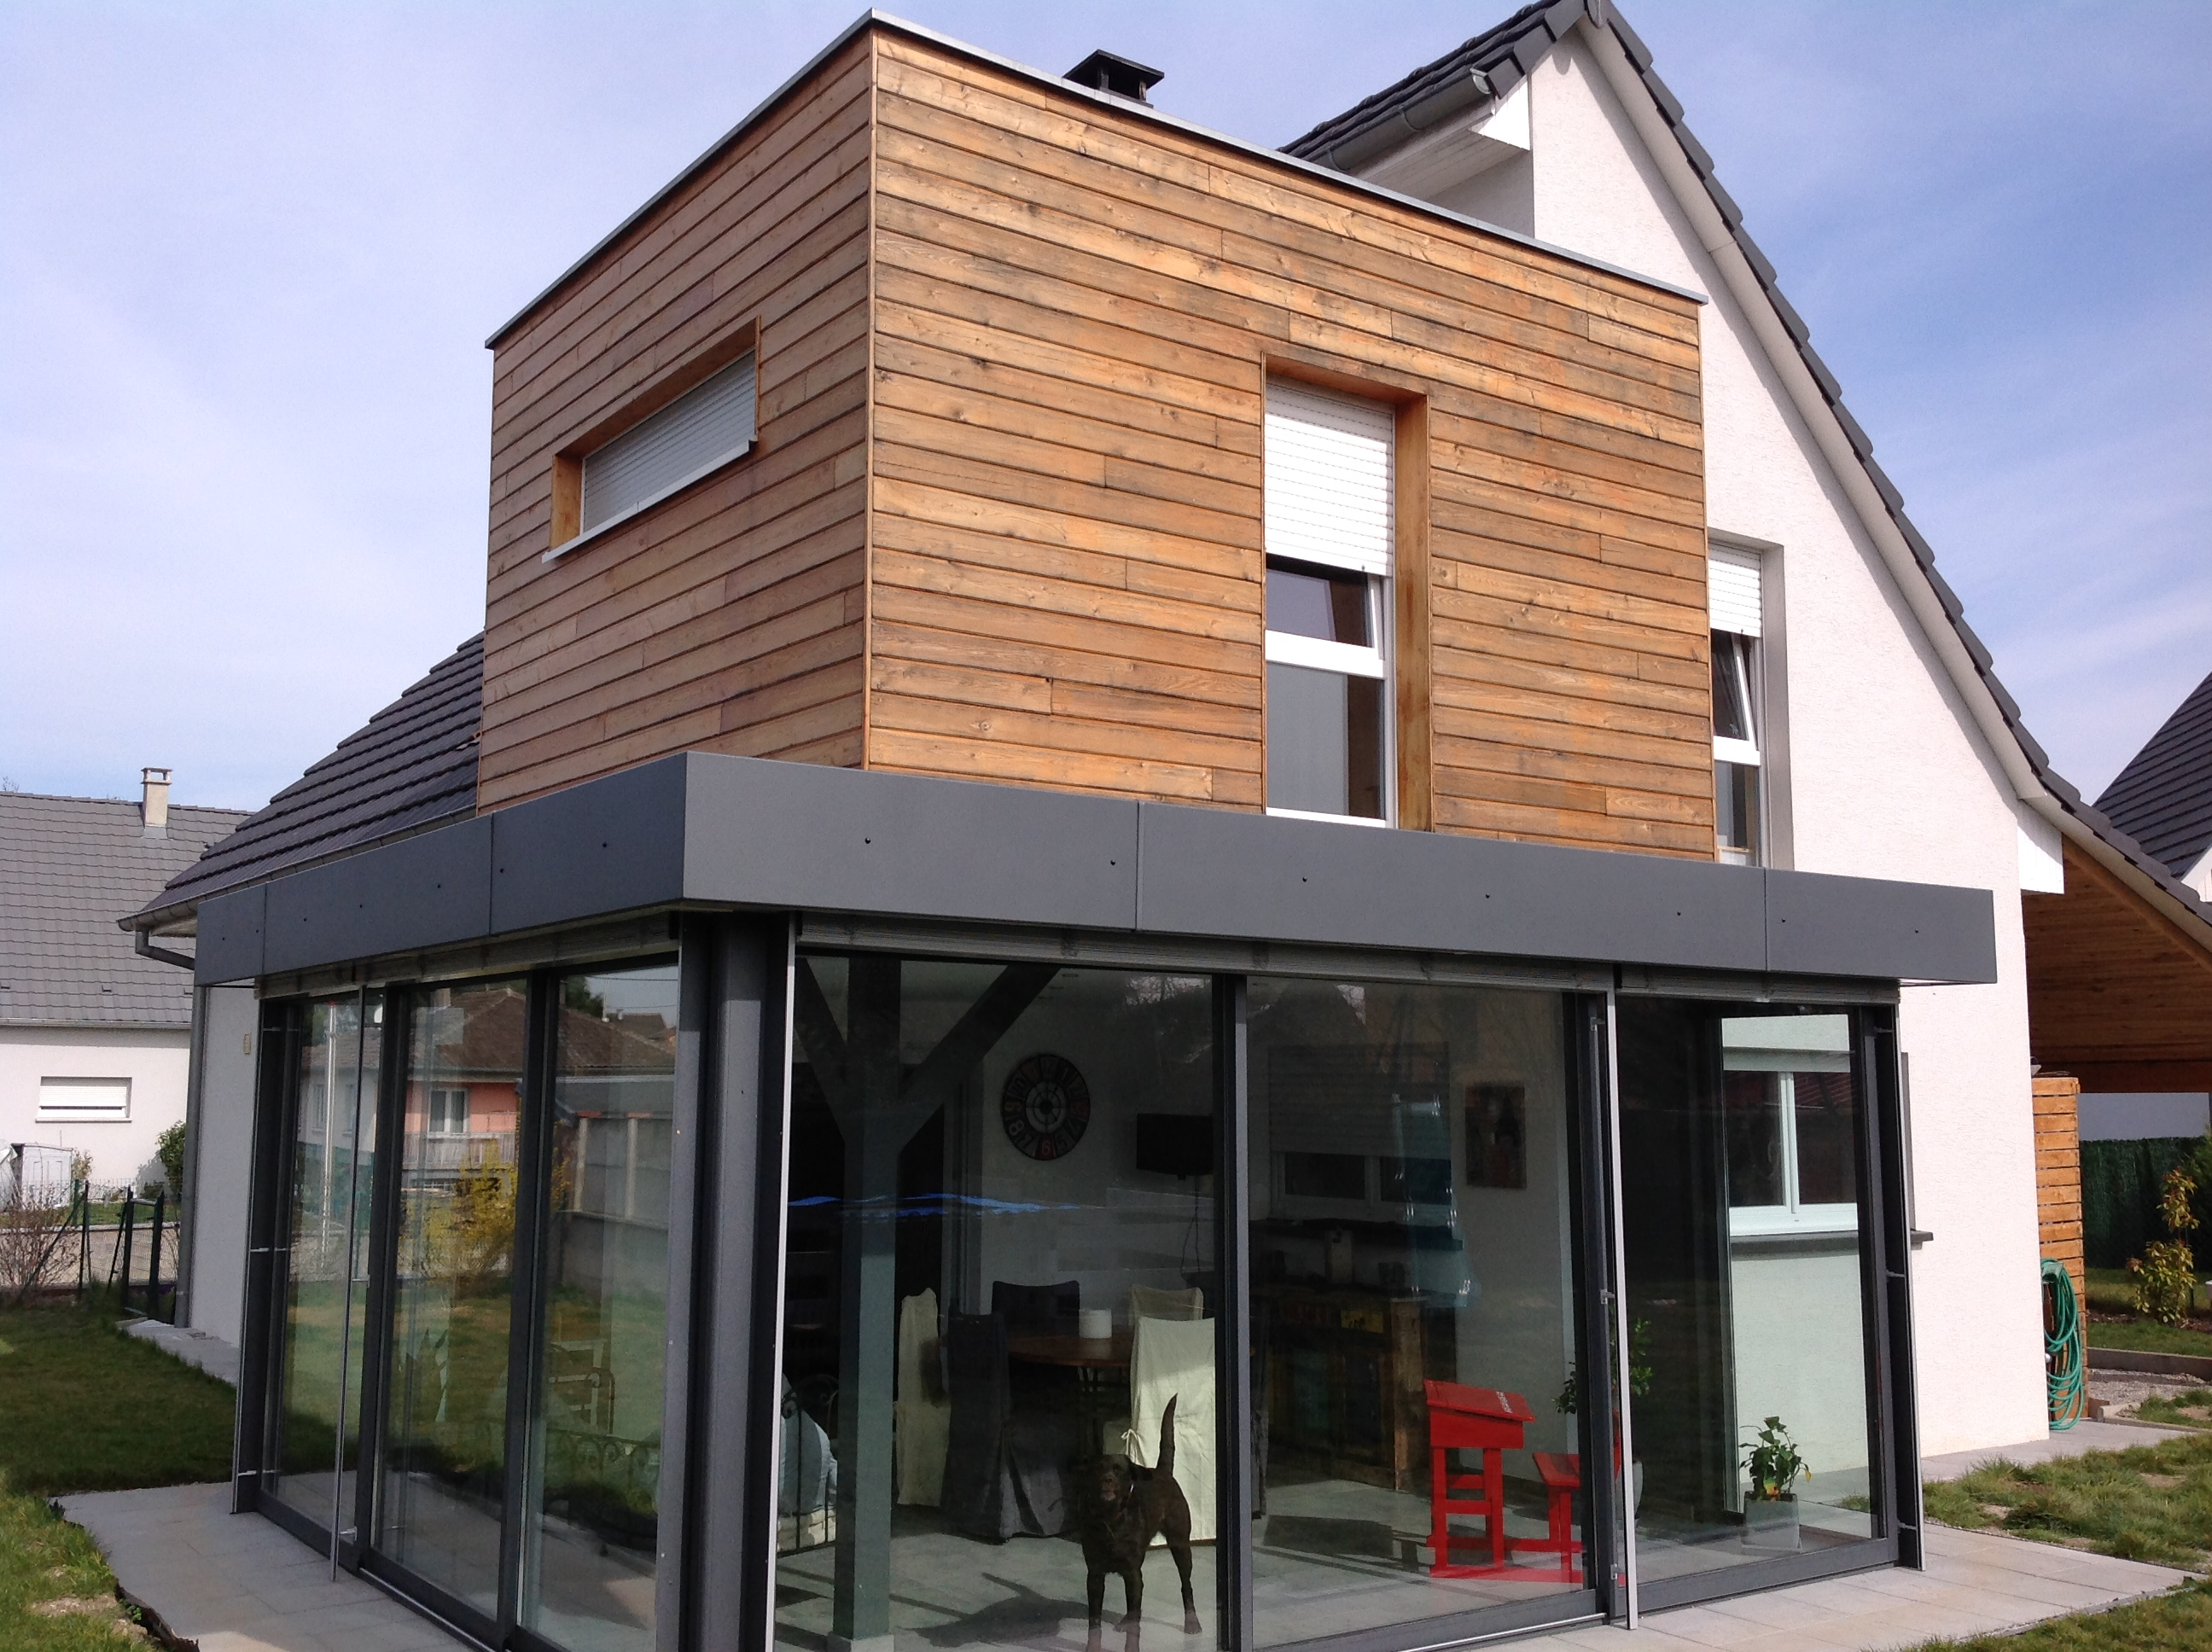 Extension de maison en tage abt construction bois - Extension en bois sur pilotis ...